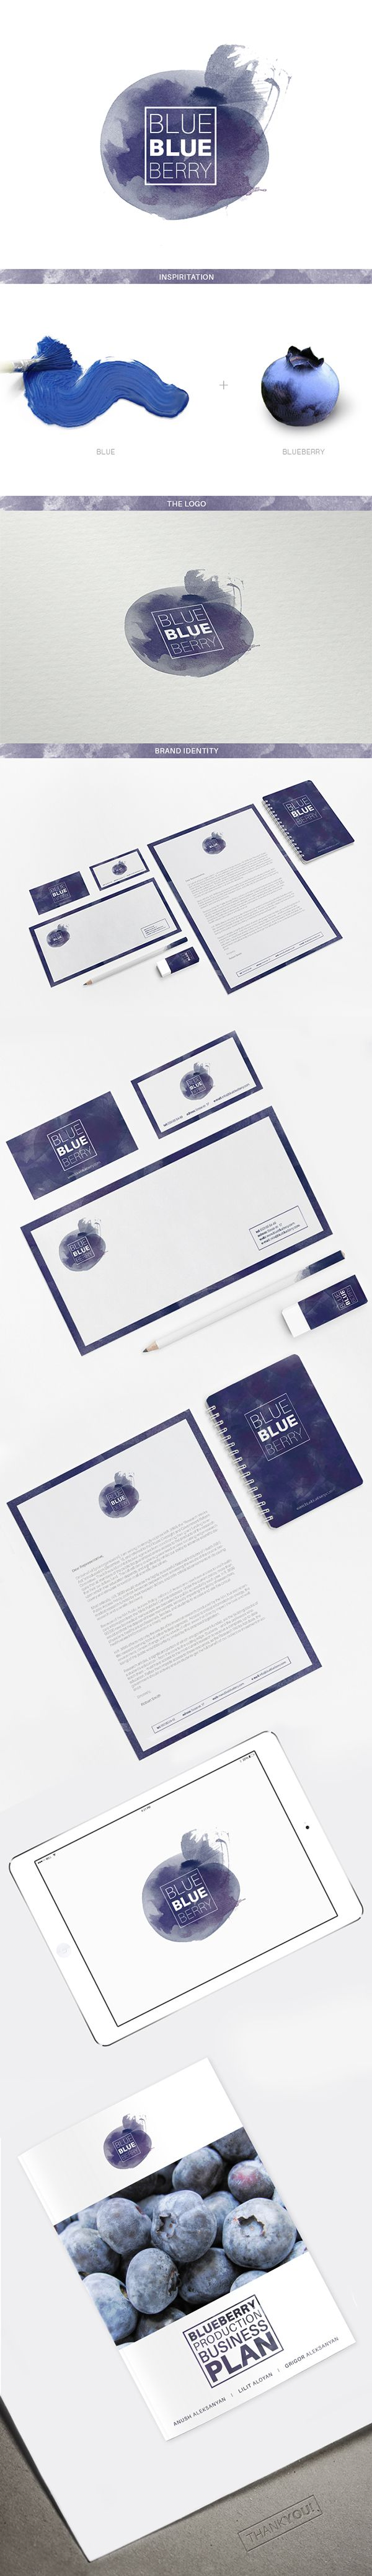 BlueBlueBerry / identity / branding / logo / stationary / fruit / restaurant / business card / inspiration / fun but still beautiful - love this design!